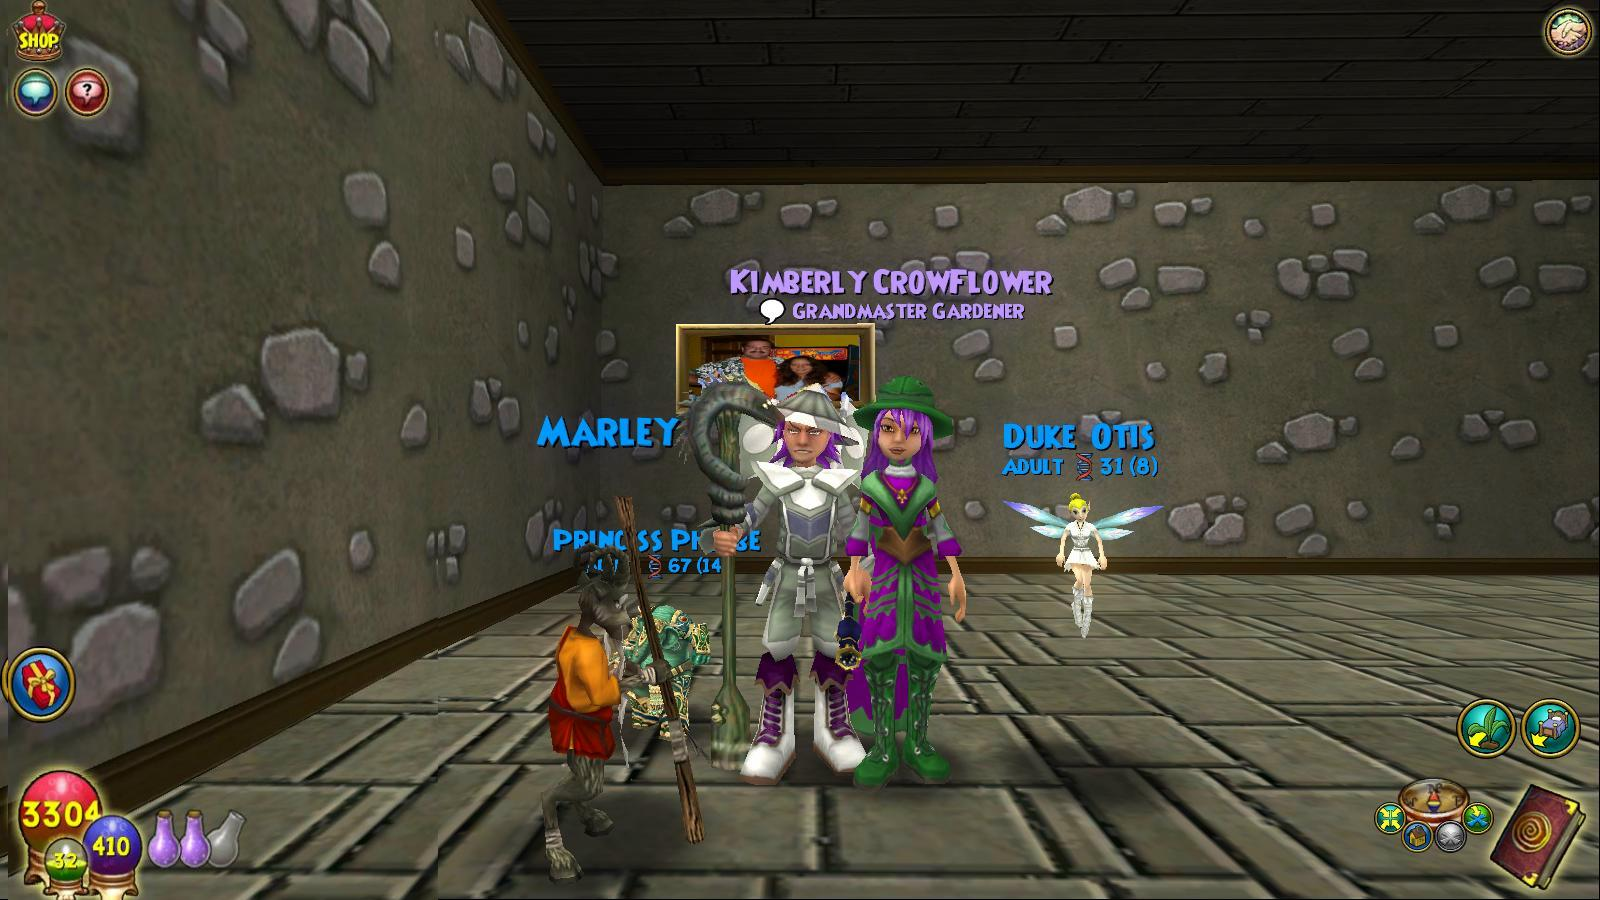 Friendly that s cool have you tried the derby racing in wizard101 at